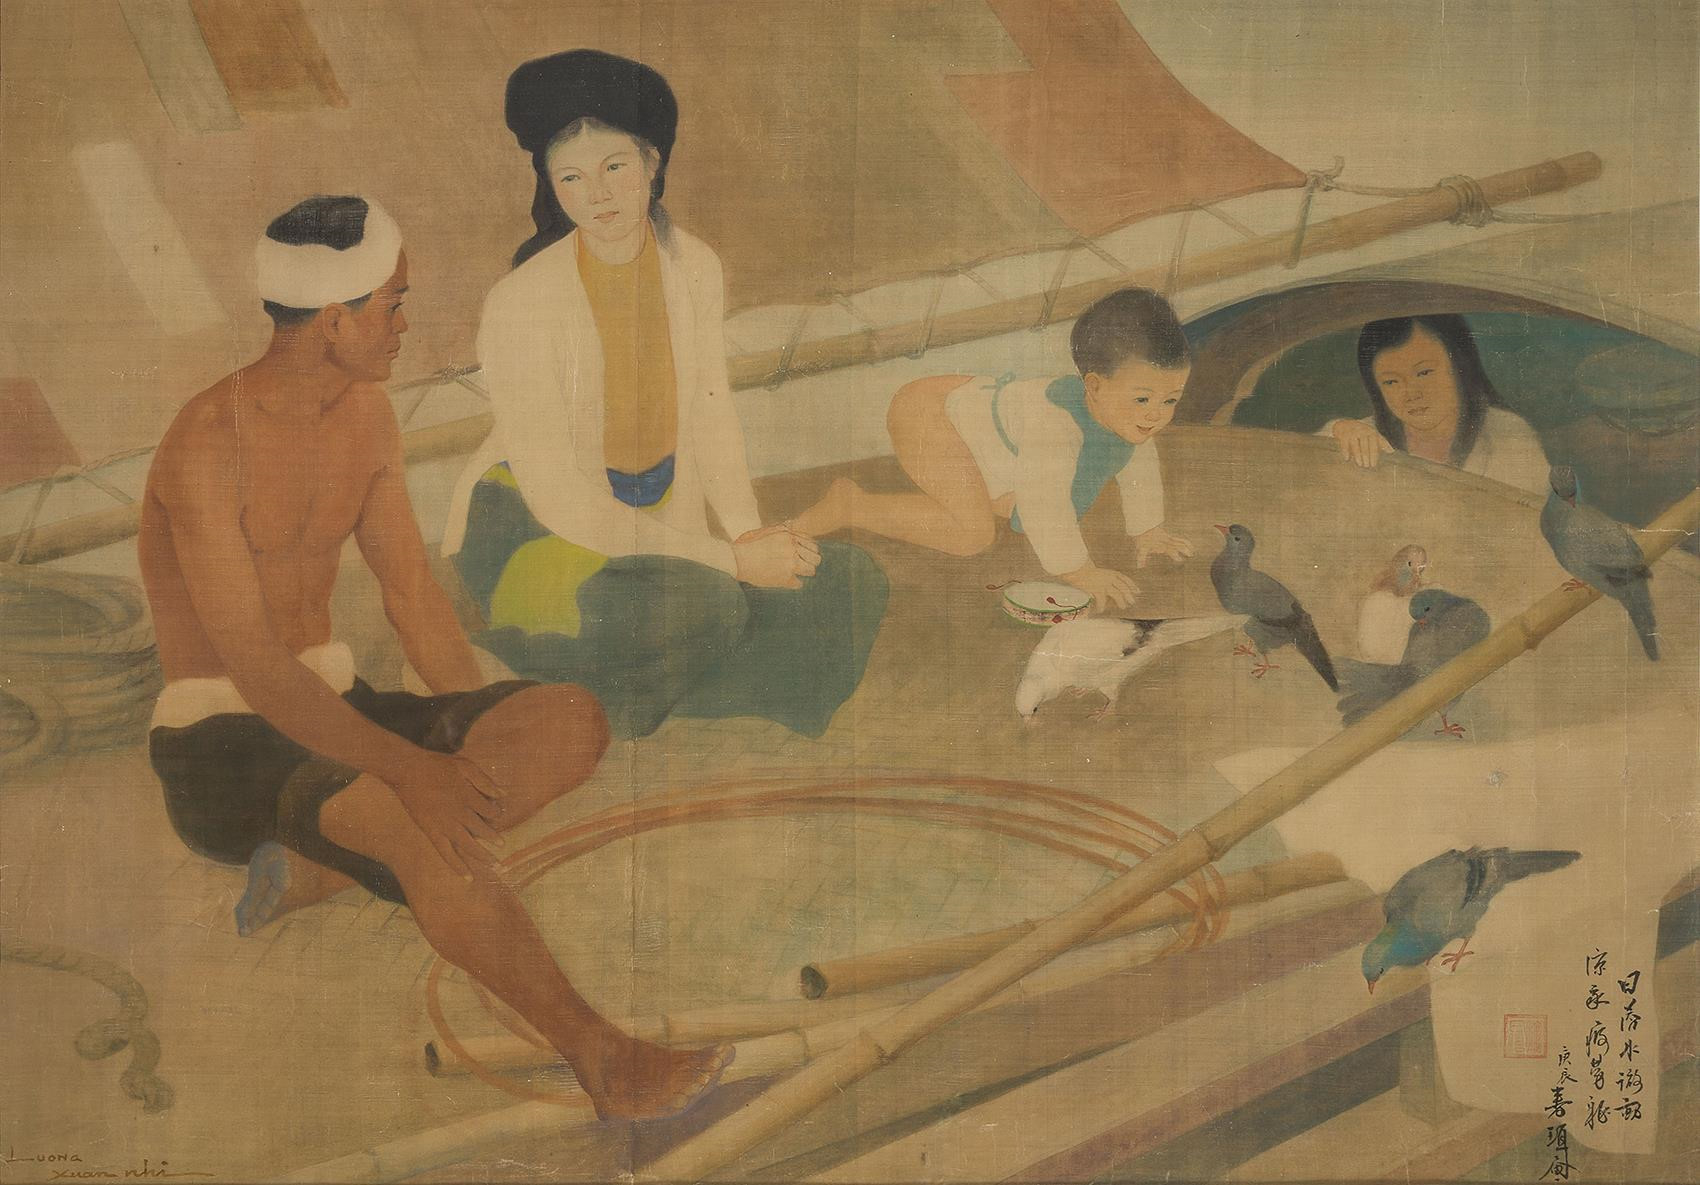 Vietnam Most Famous Paintings - Fishman's Family